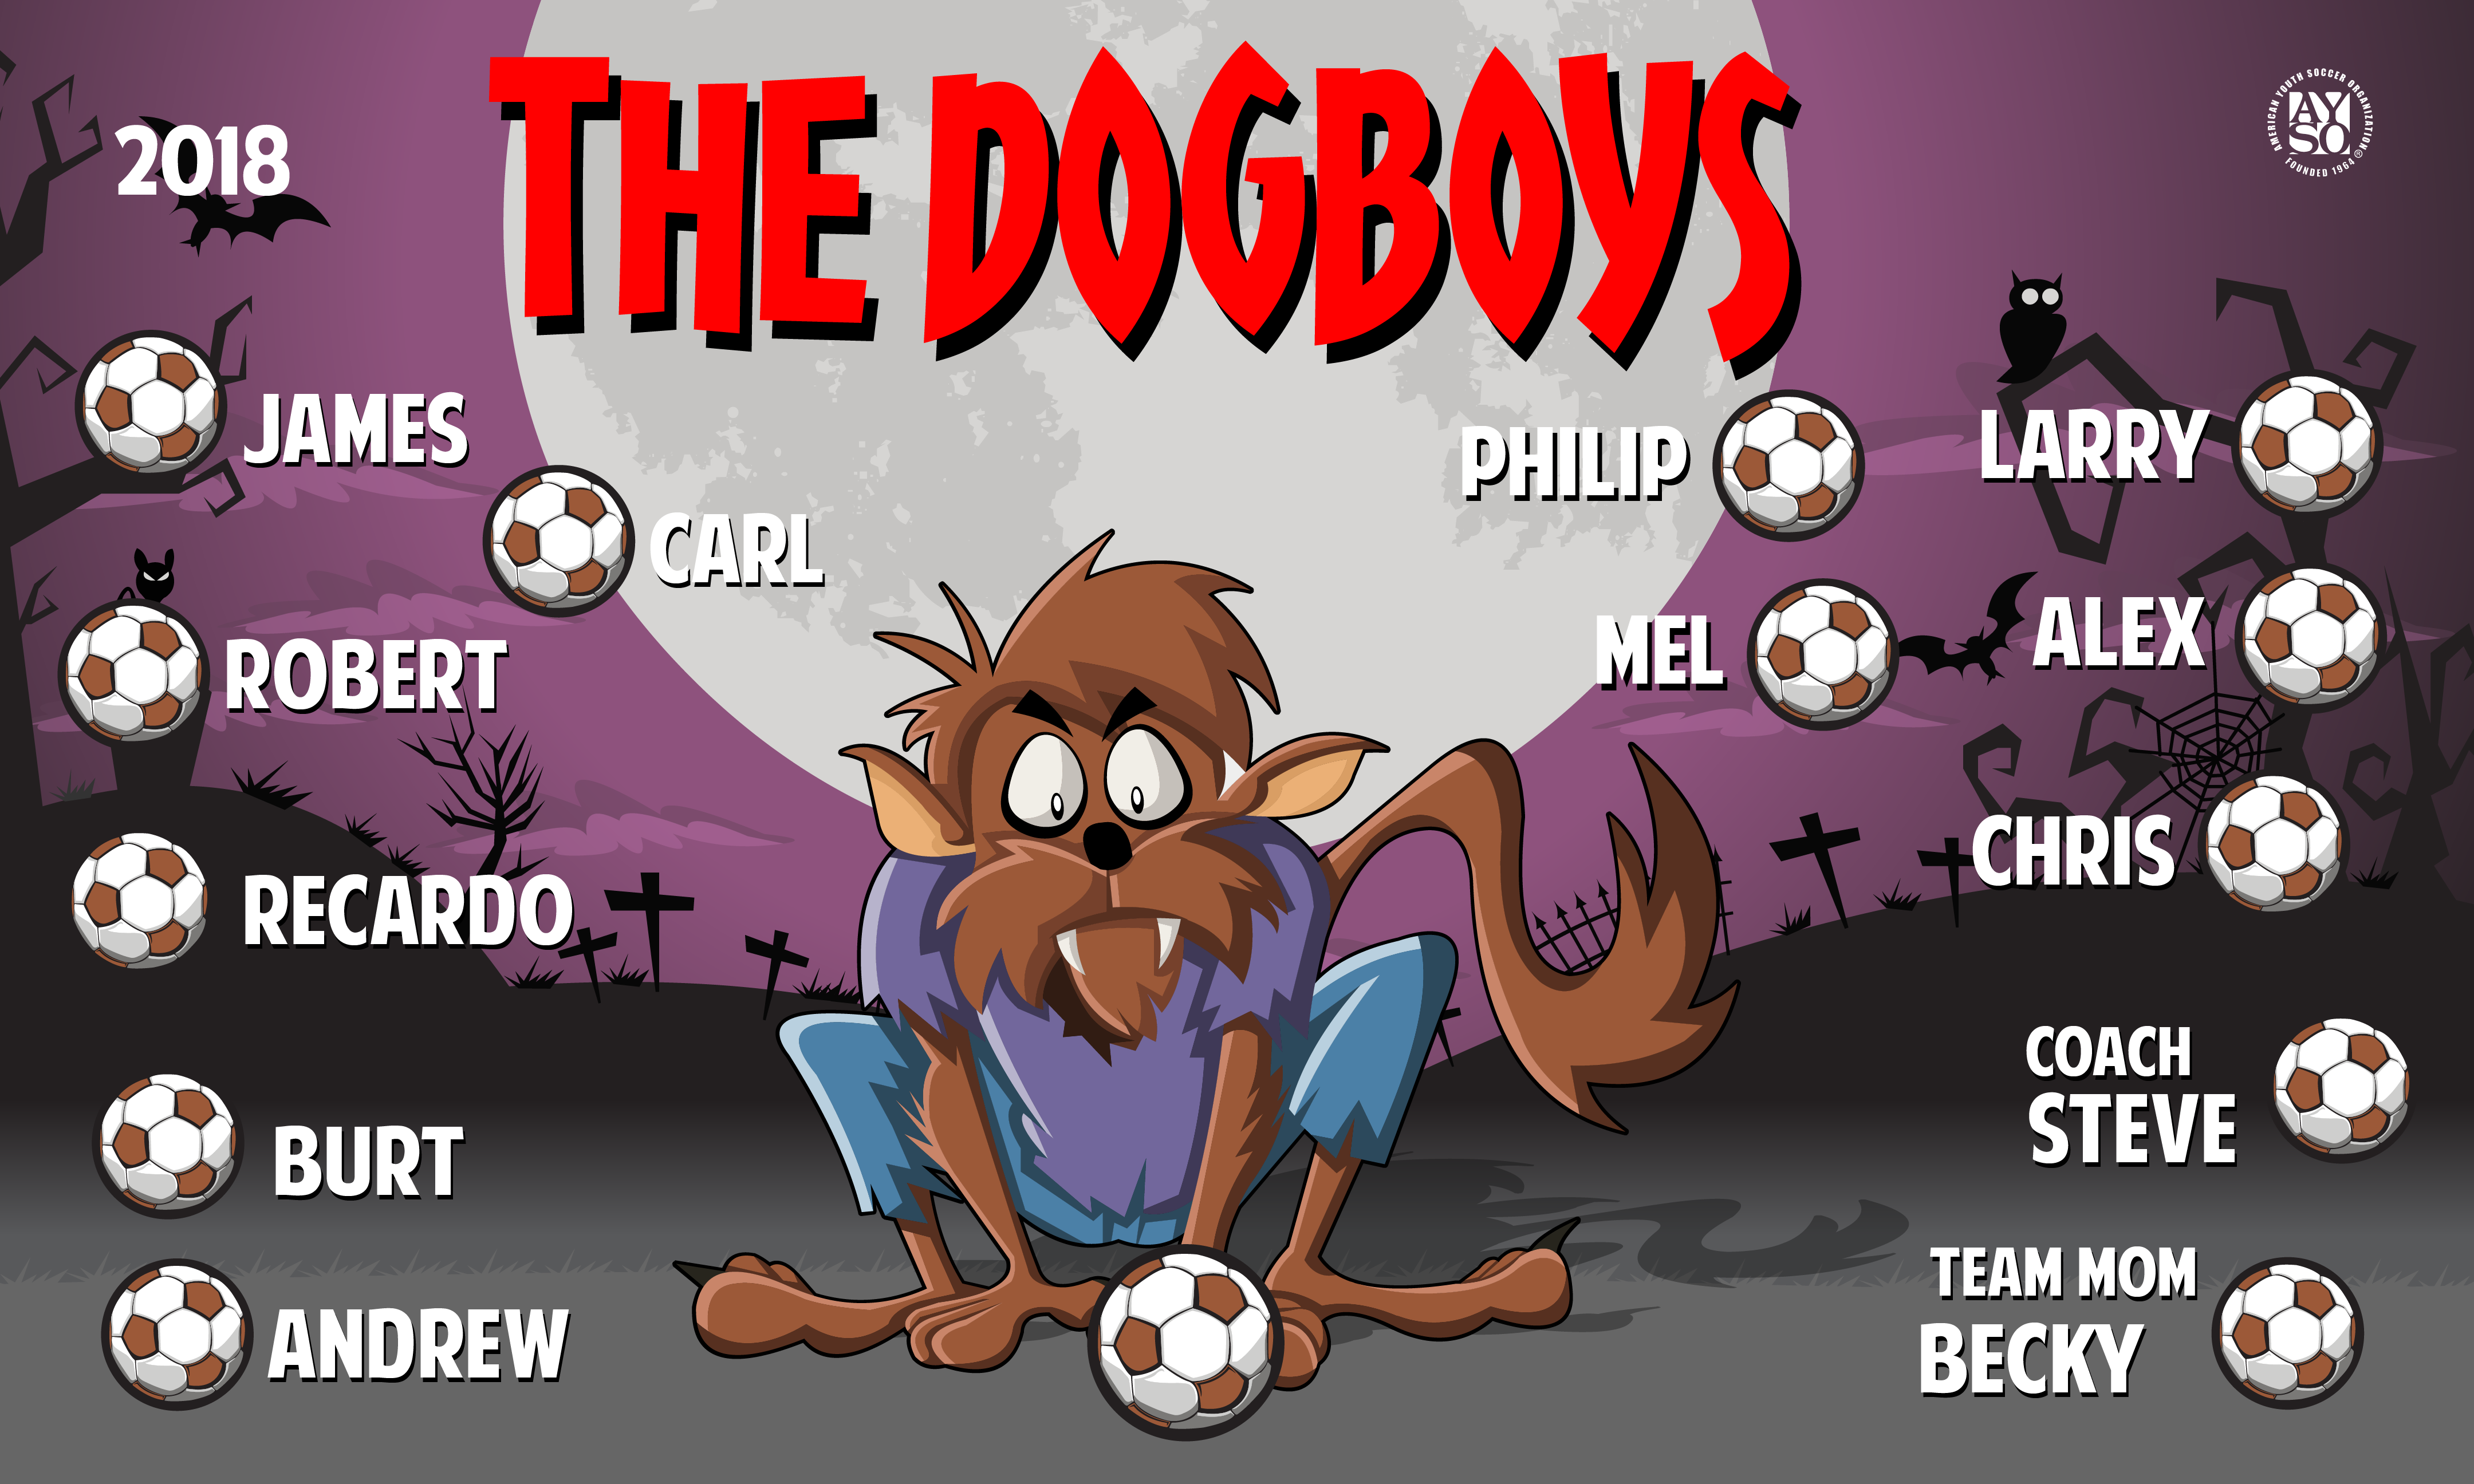 B1634 The Dogboys 3x5 Banner